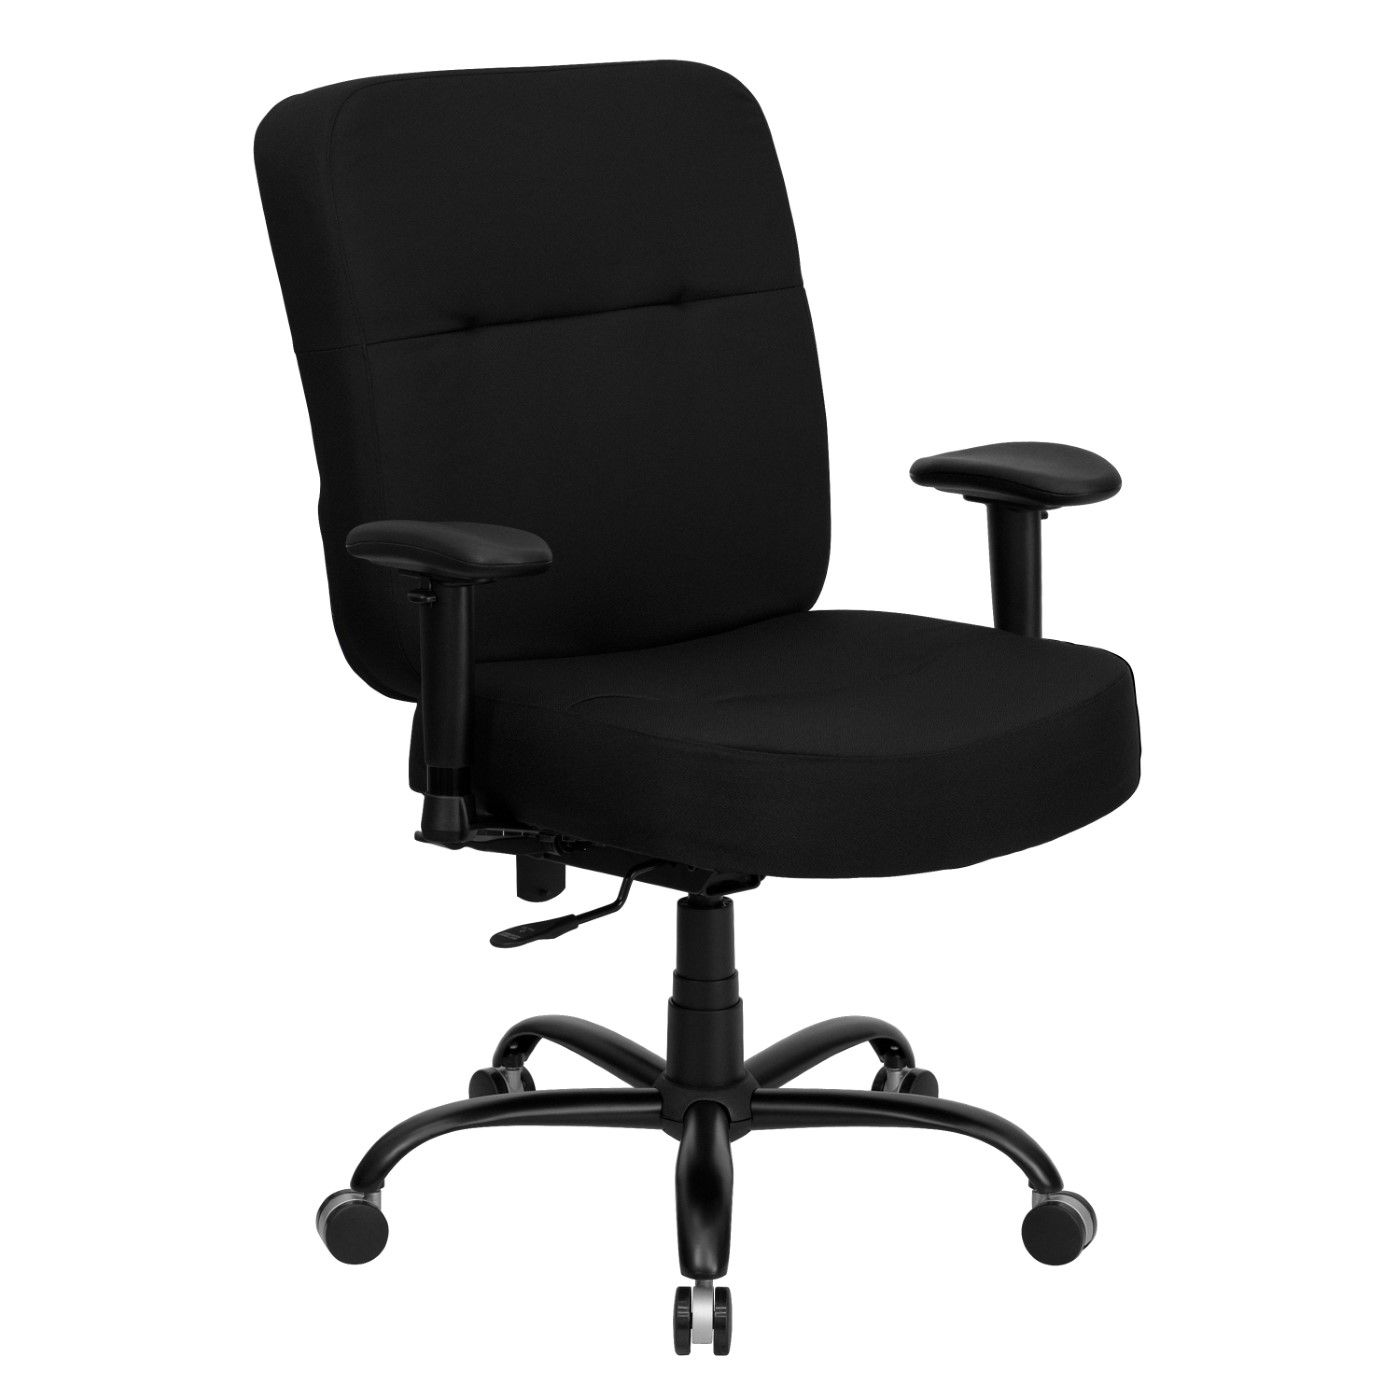 TOUGH ENOUGH Series Big & Tall 400 lb. Rated Black Fabric Rectangular Back Ergonomic Office Chair with Arms